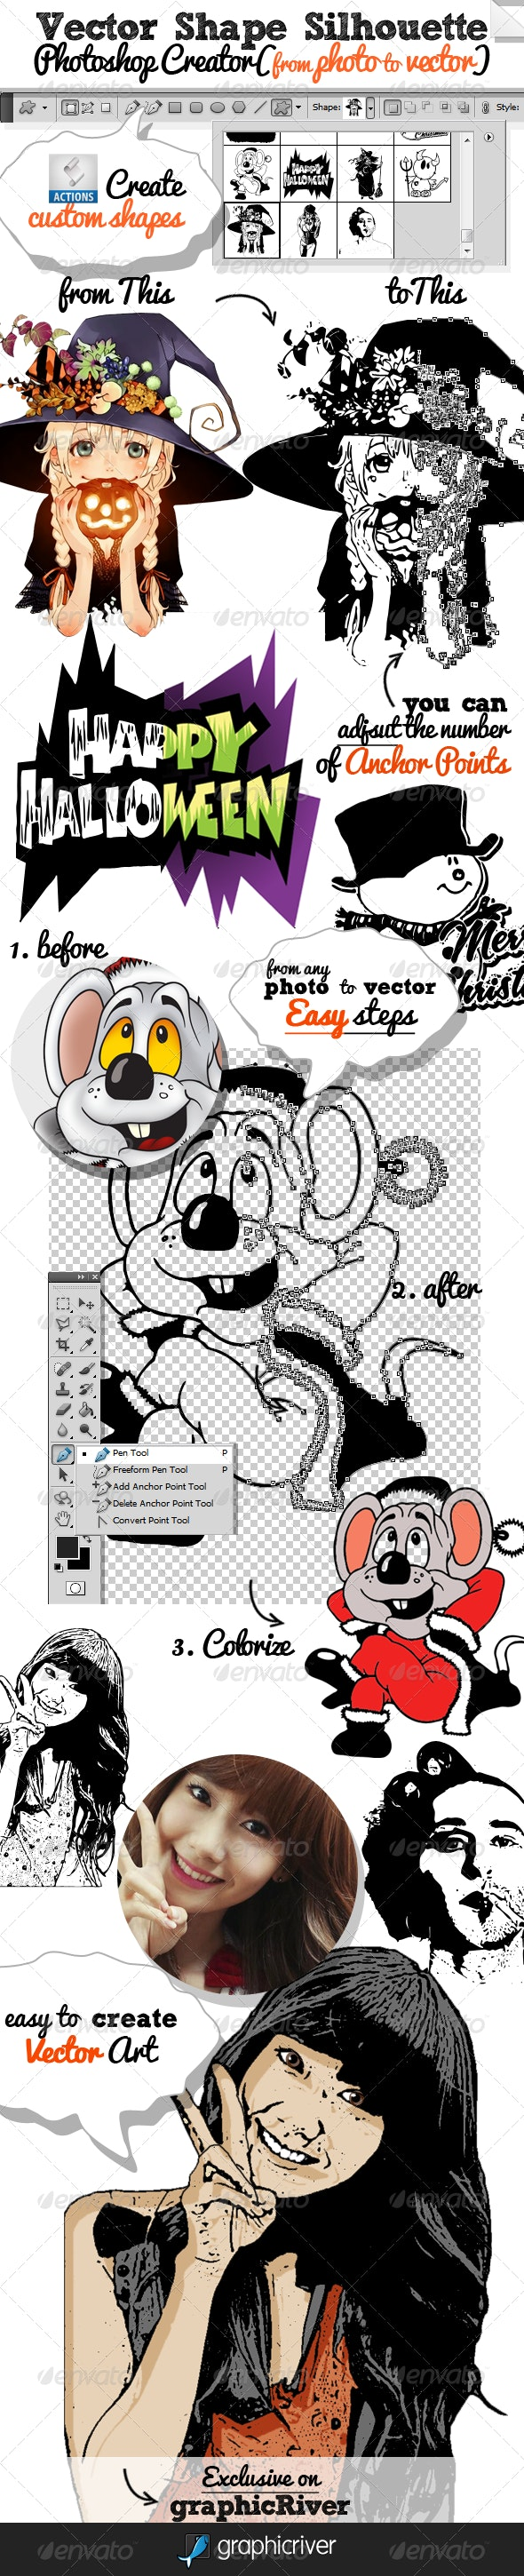 Vector Shapes and Silhouettes Photoshop Creator - Utilities Actions